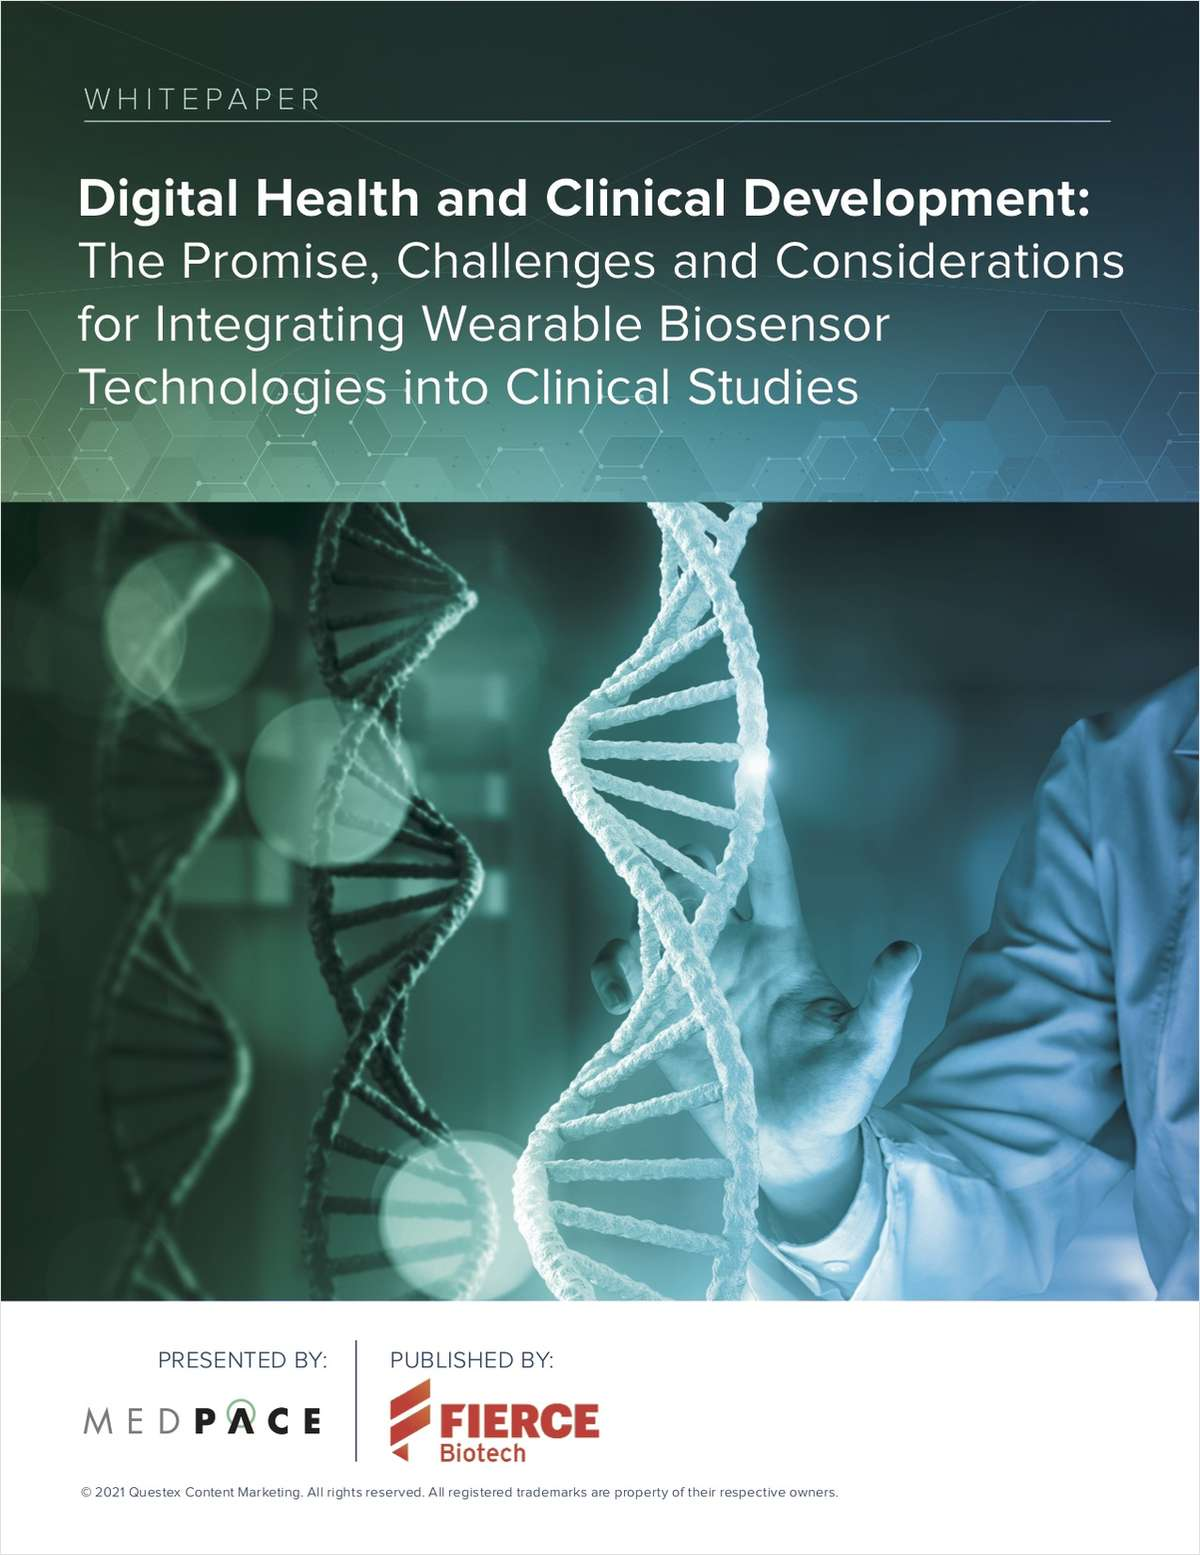 Digital Health and Clinical Development: The Promise, Challenges and Considerations for Integrating Wearable Biosensor Technologies into Clinical Studies